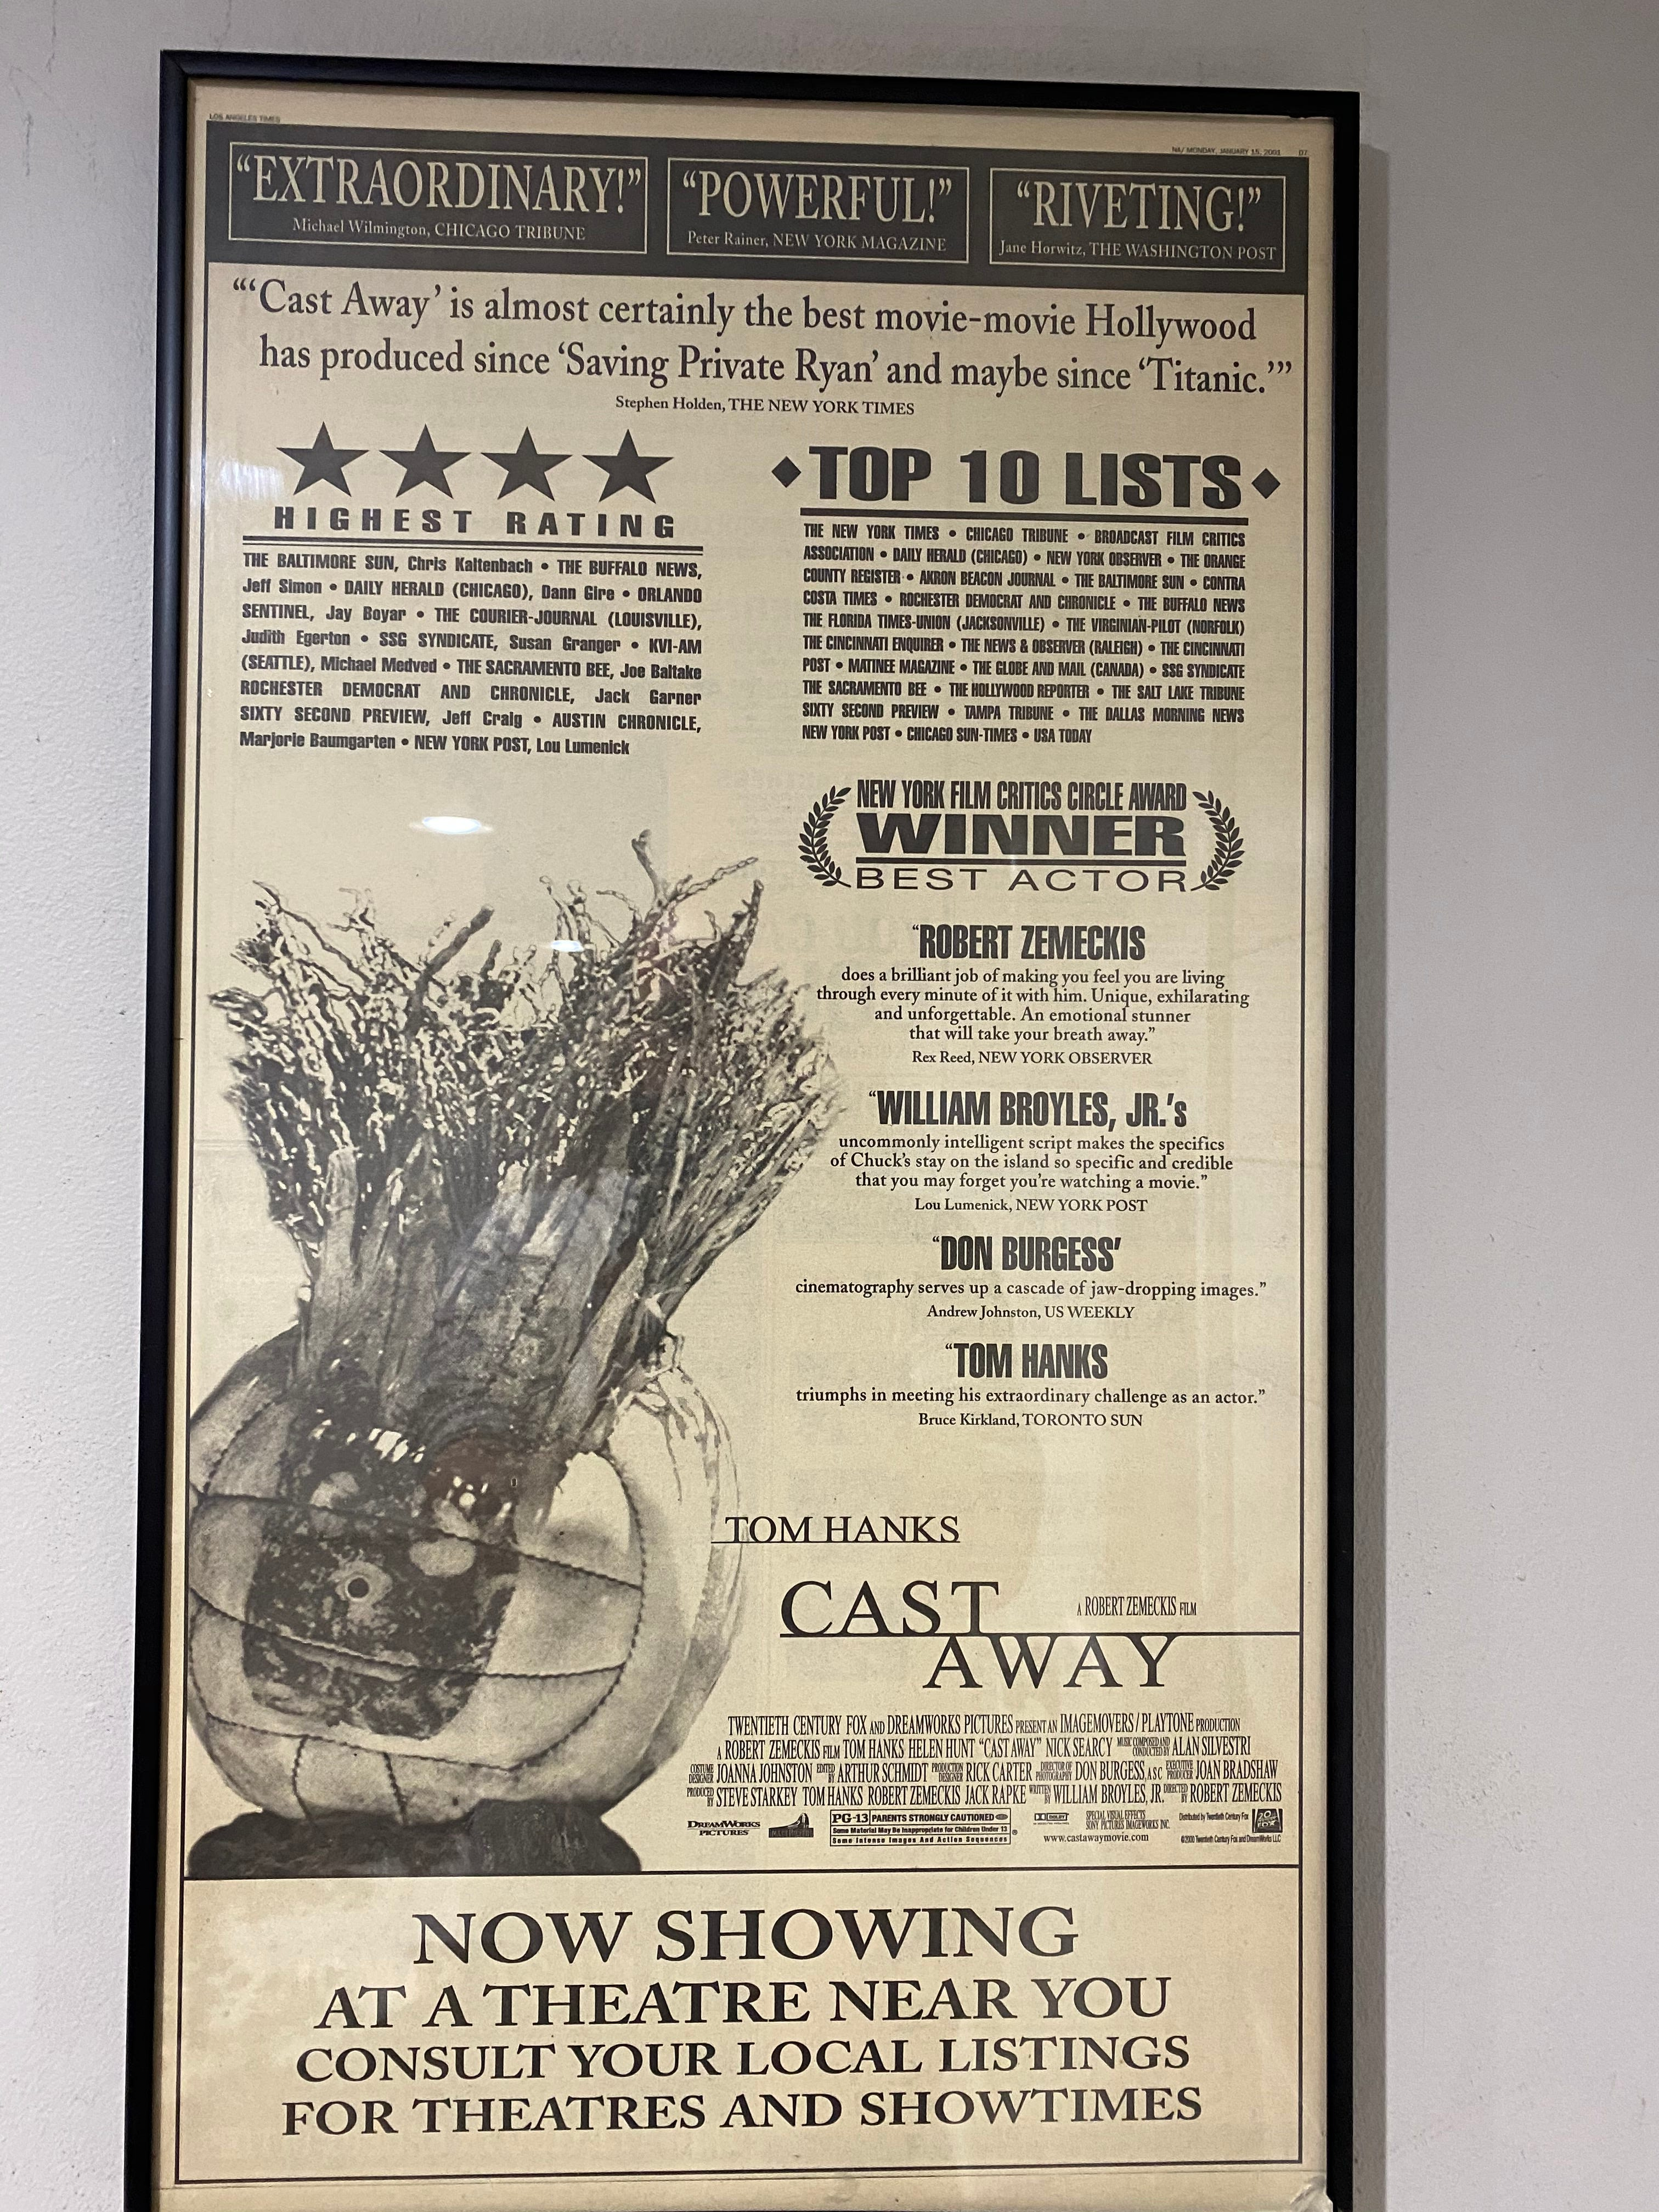 A framed Cast Away movie poster